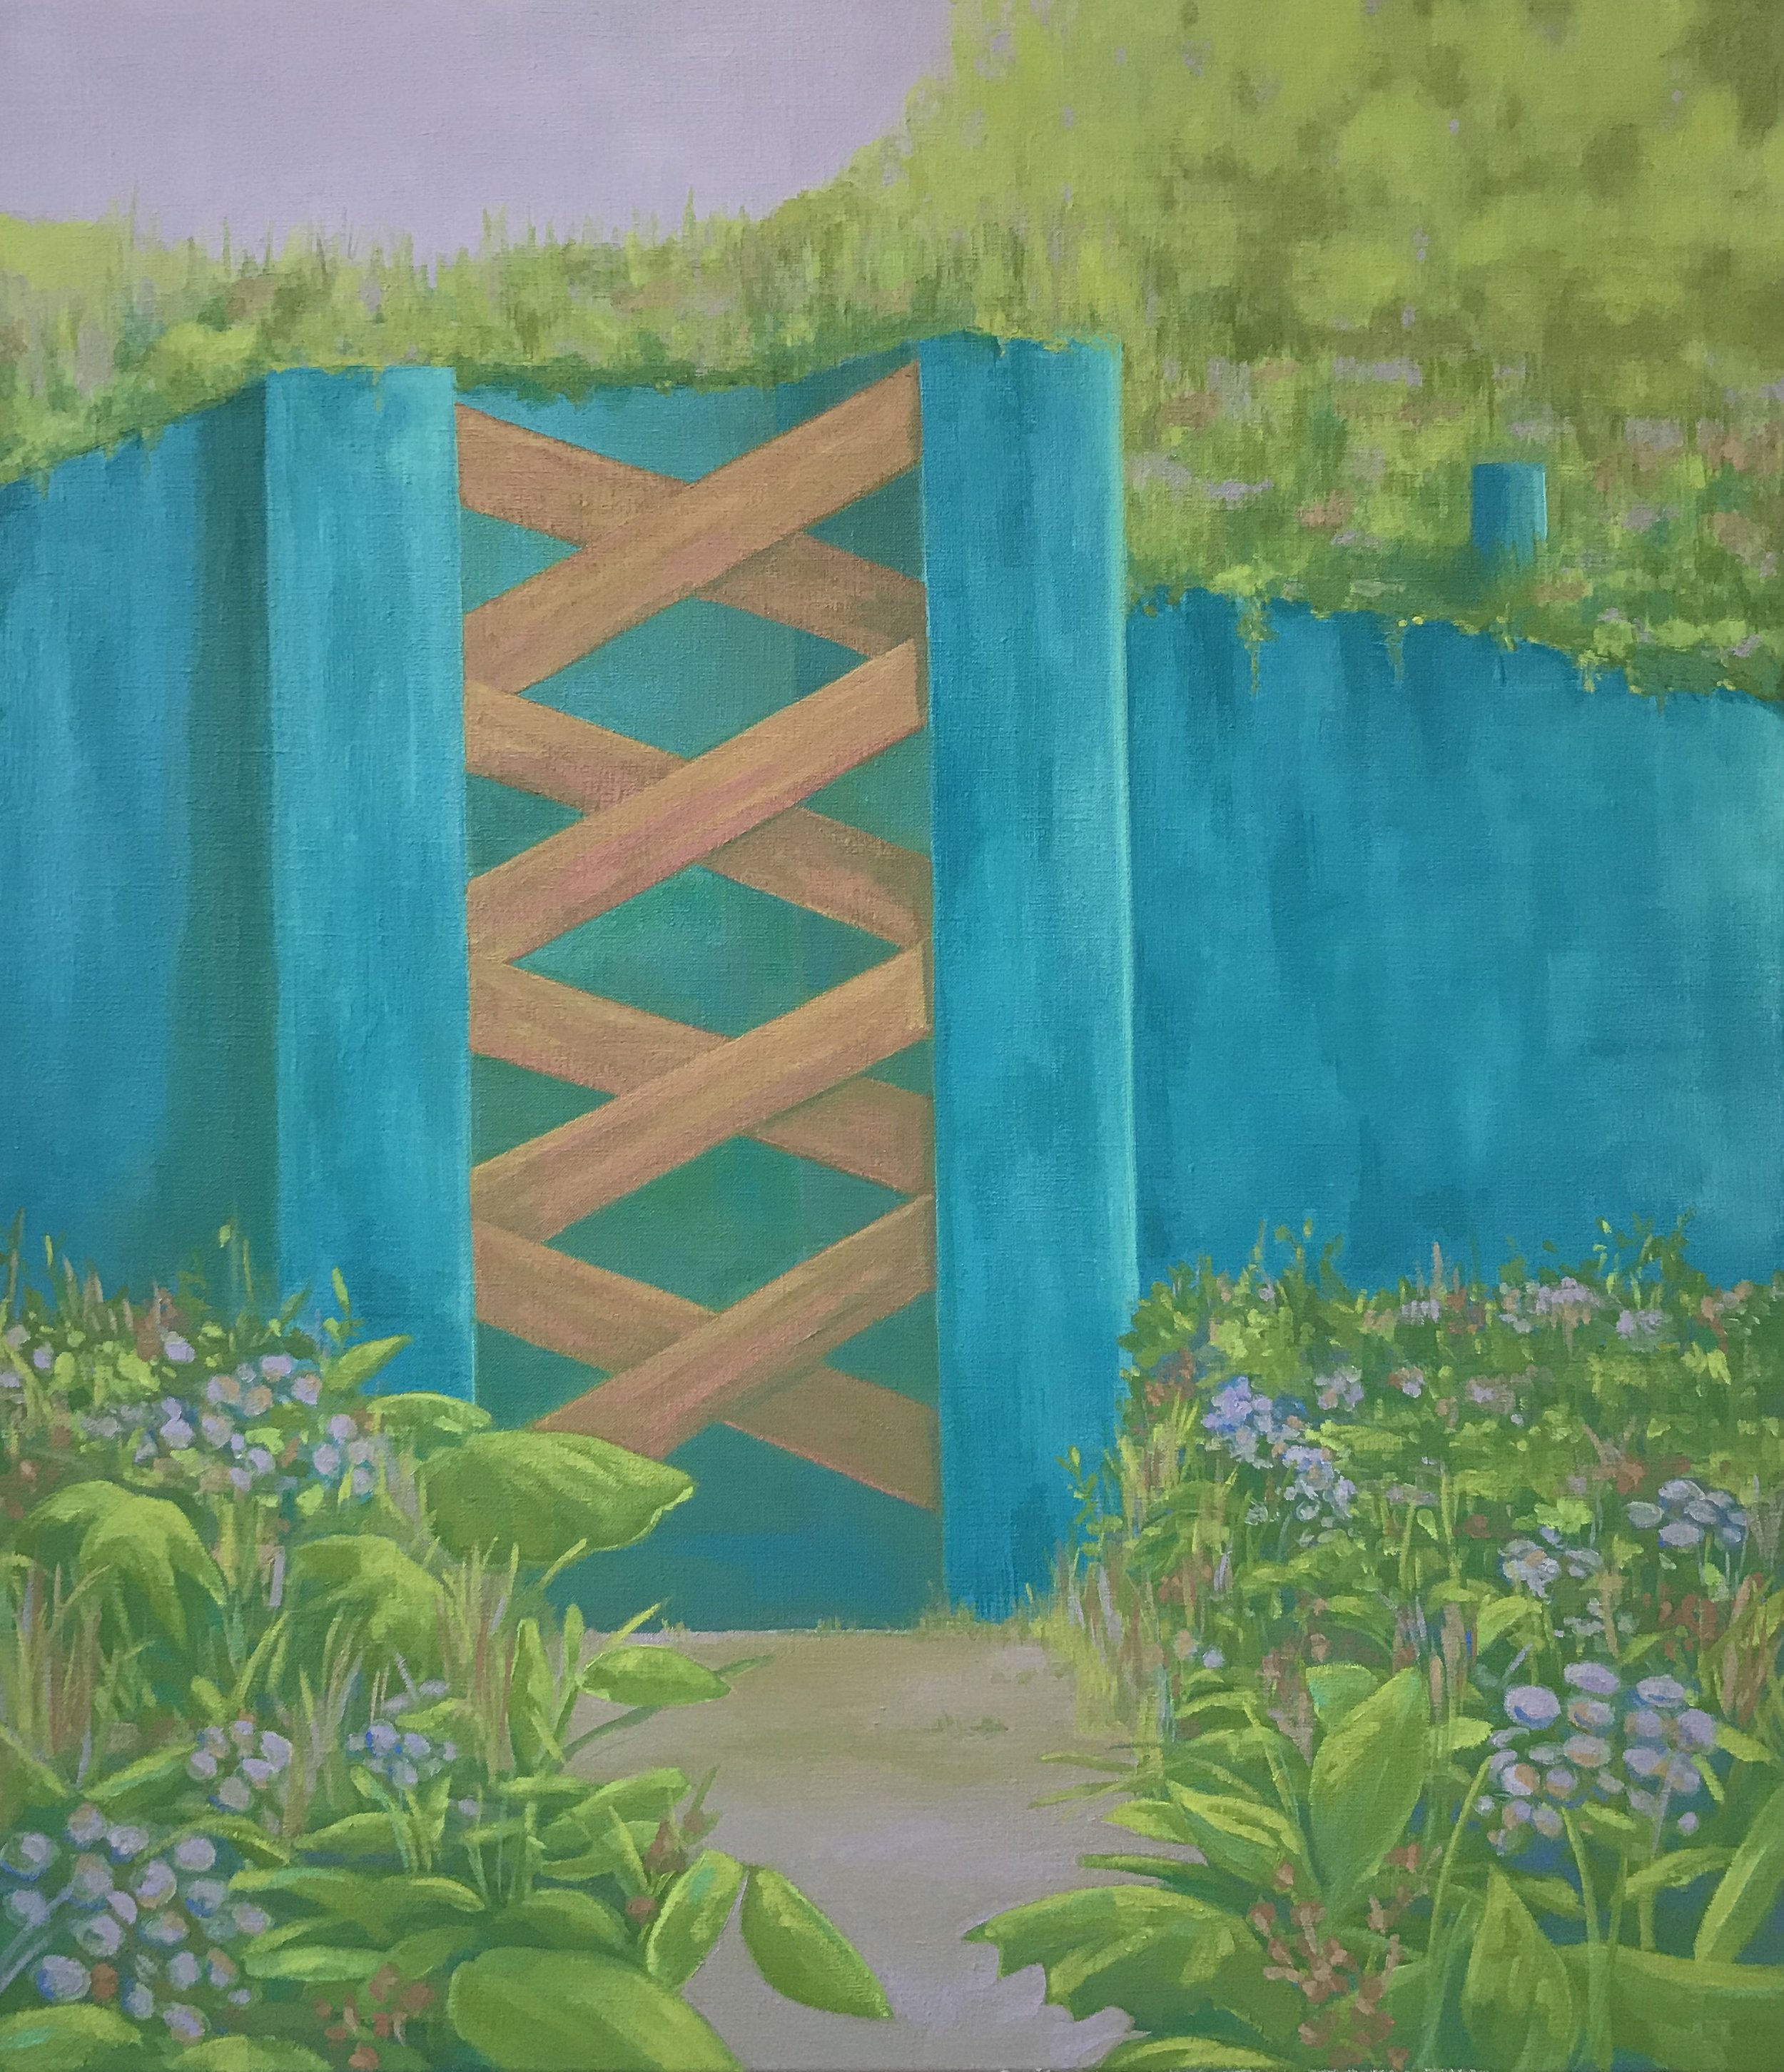 Blue Border Wall, Oil on Canvas 30 inches x 26 inches 2018